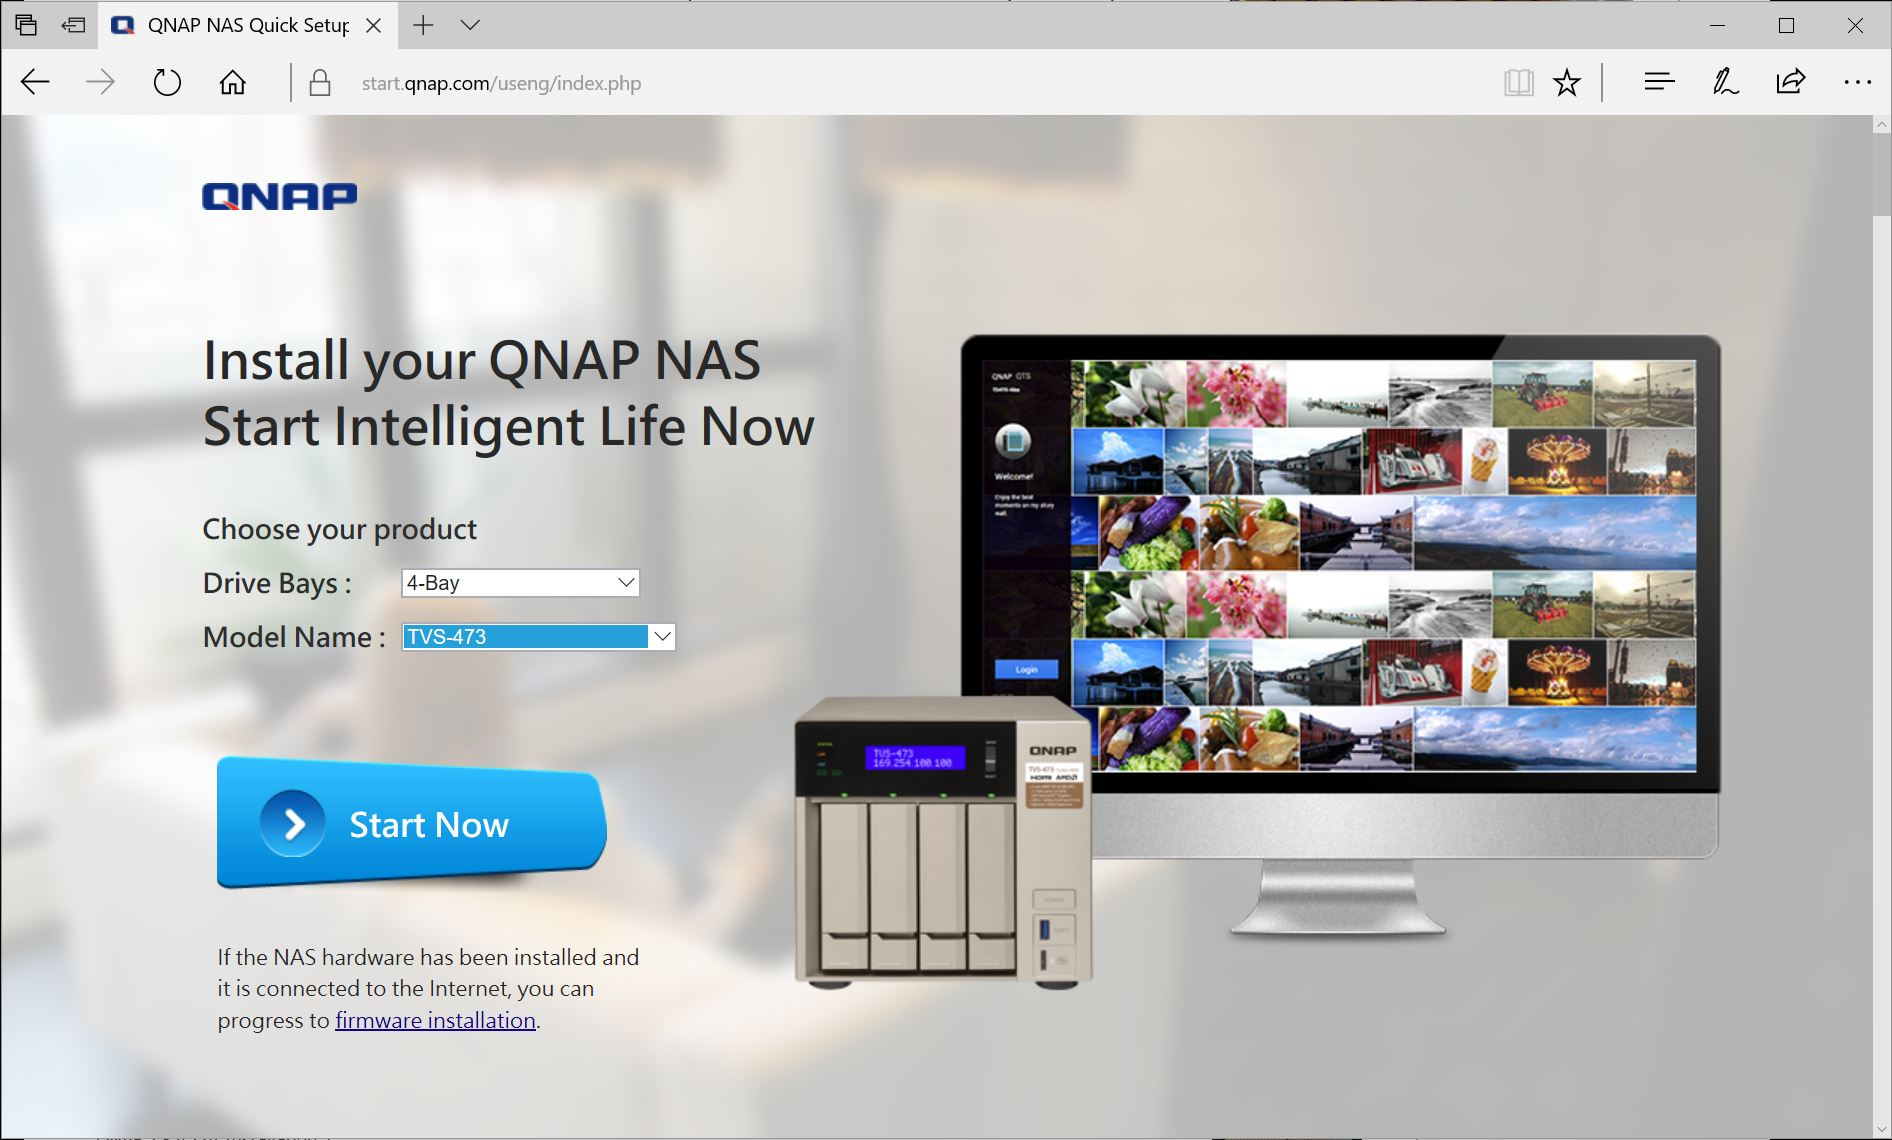 Powerful QNAP TVS-473 Turbo 4-Bay vNAS - Part 1 - Overview